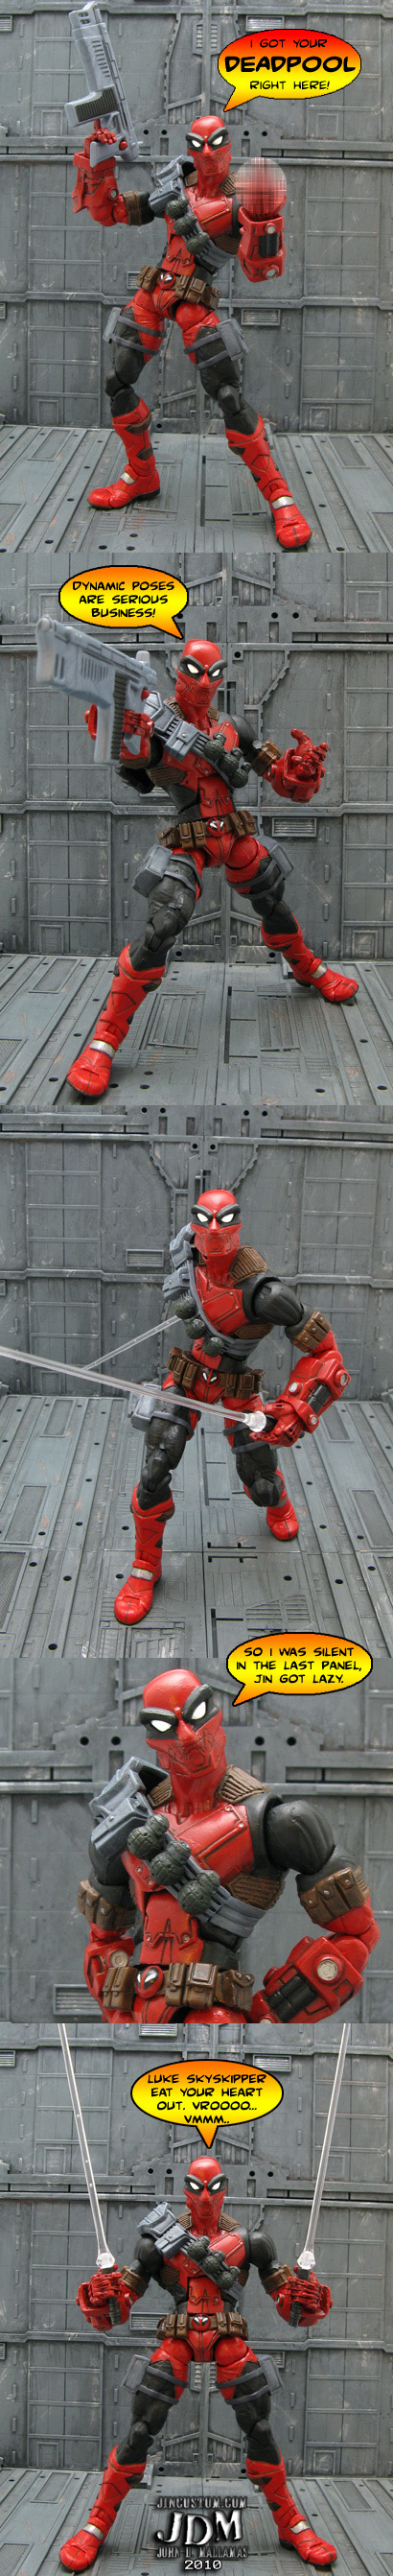 Future Deadpool Figure